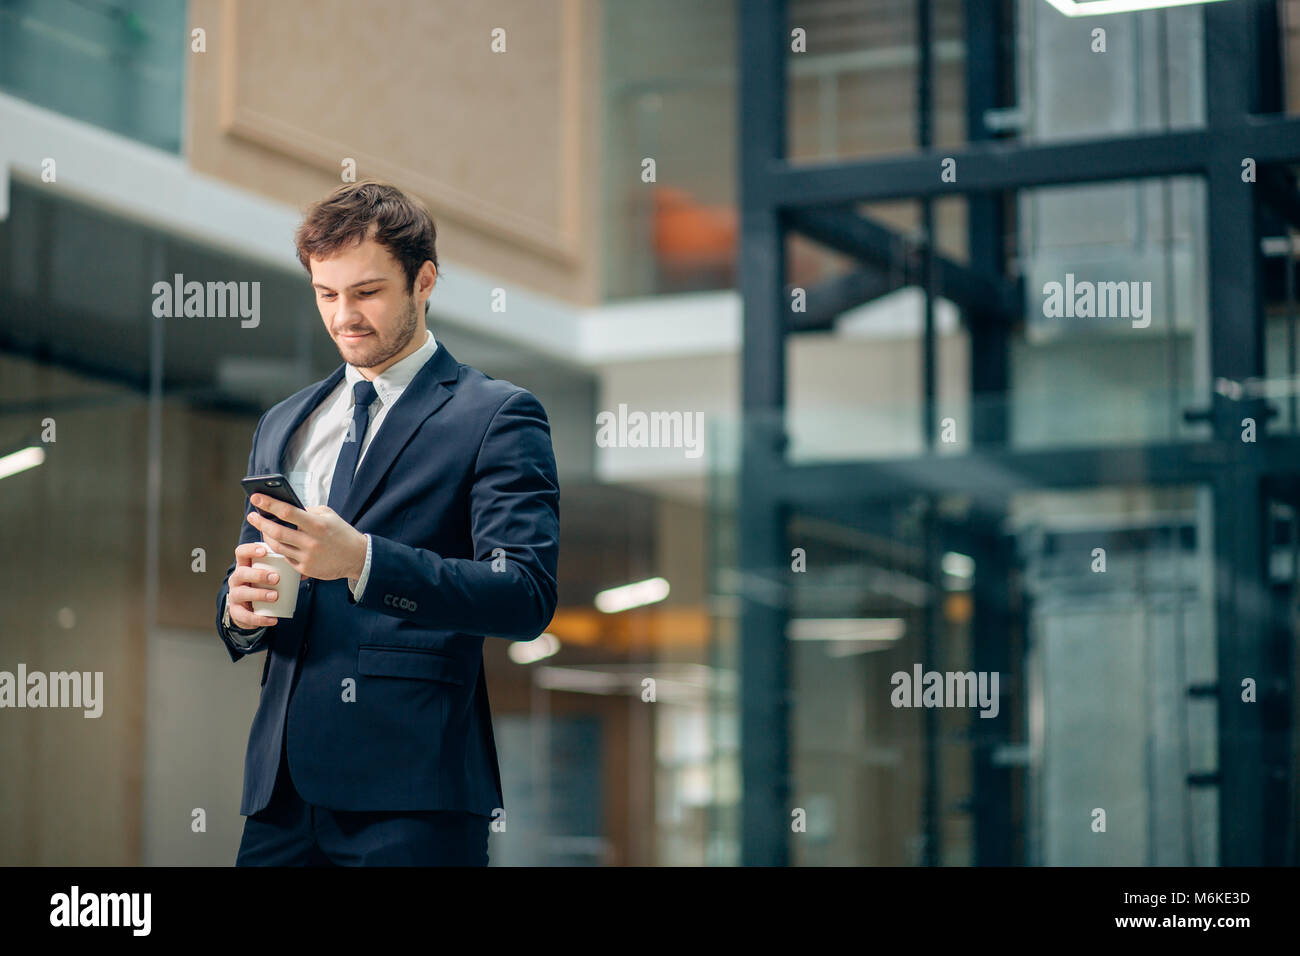 Businessman in black suit drinking takeaway coffee and use phone - Stock Image